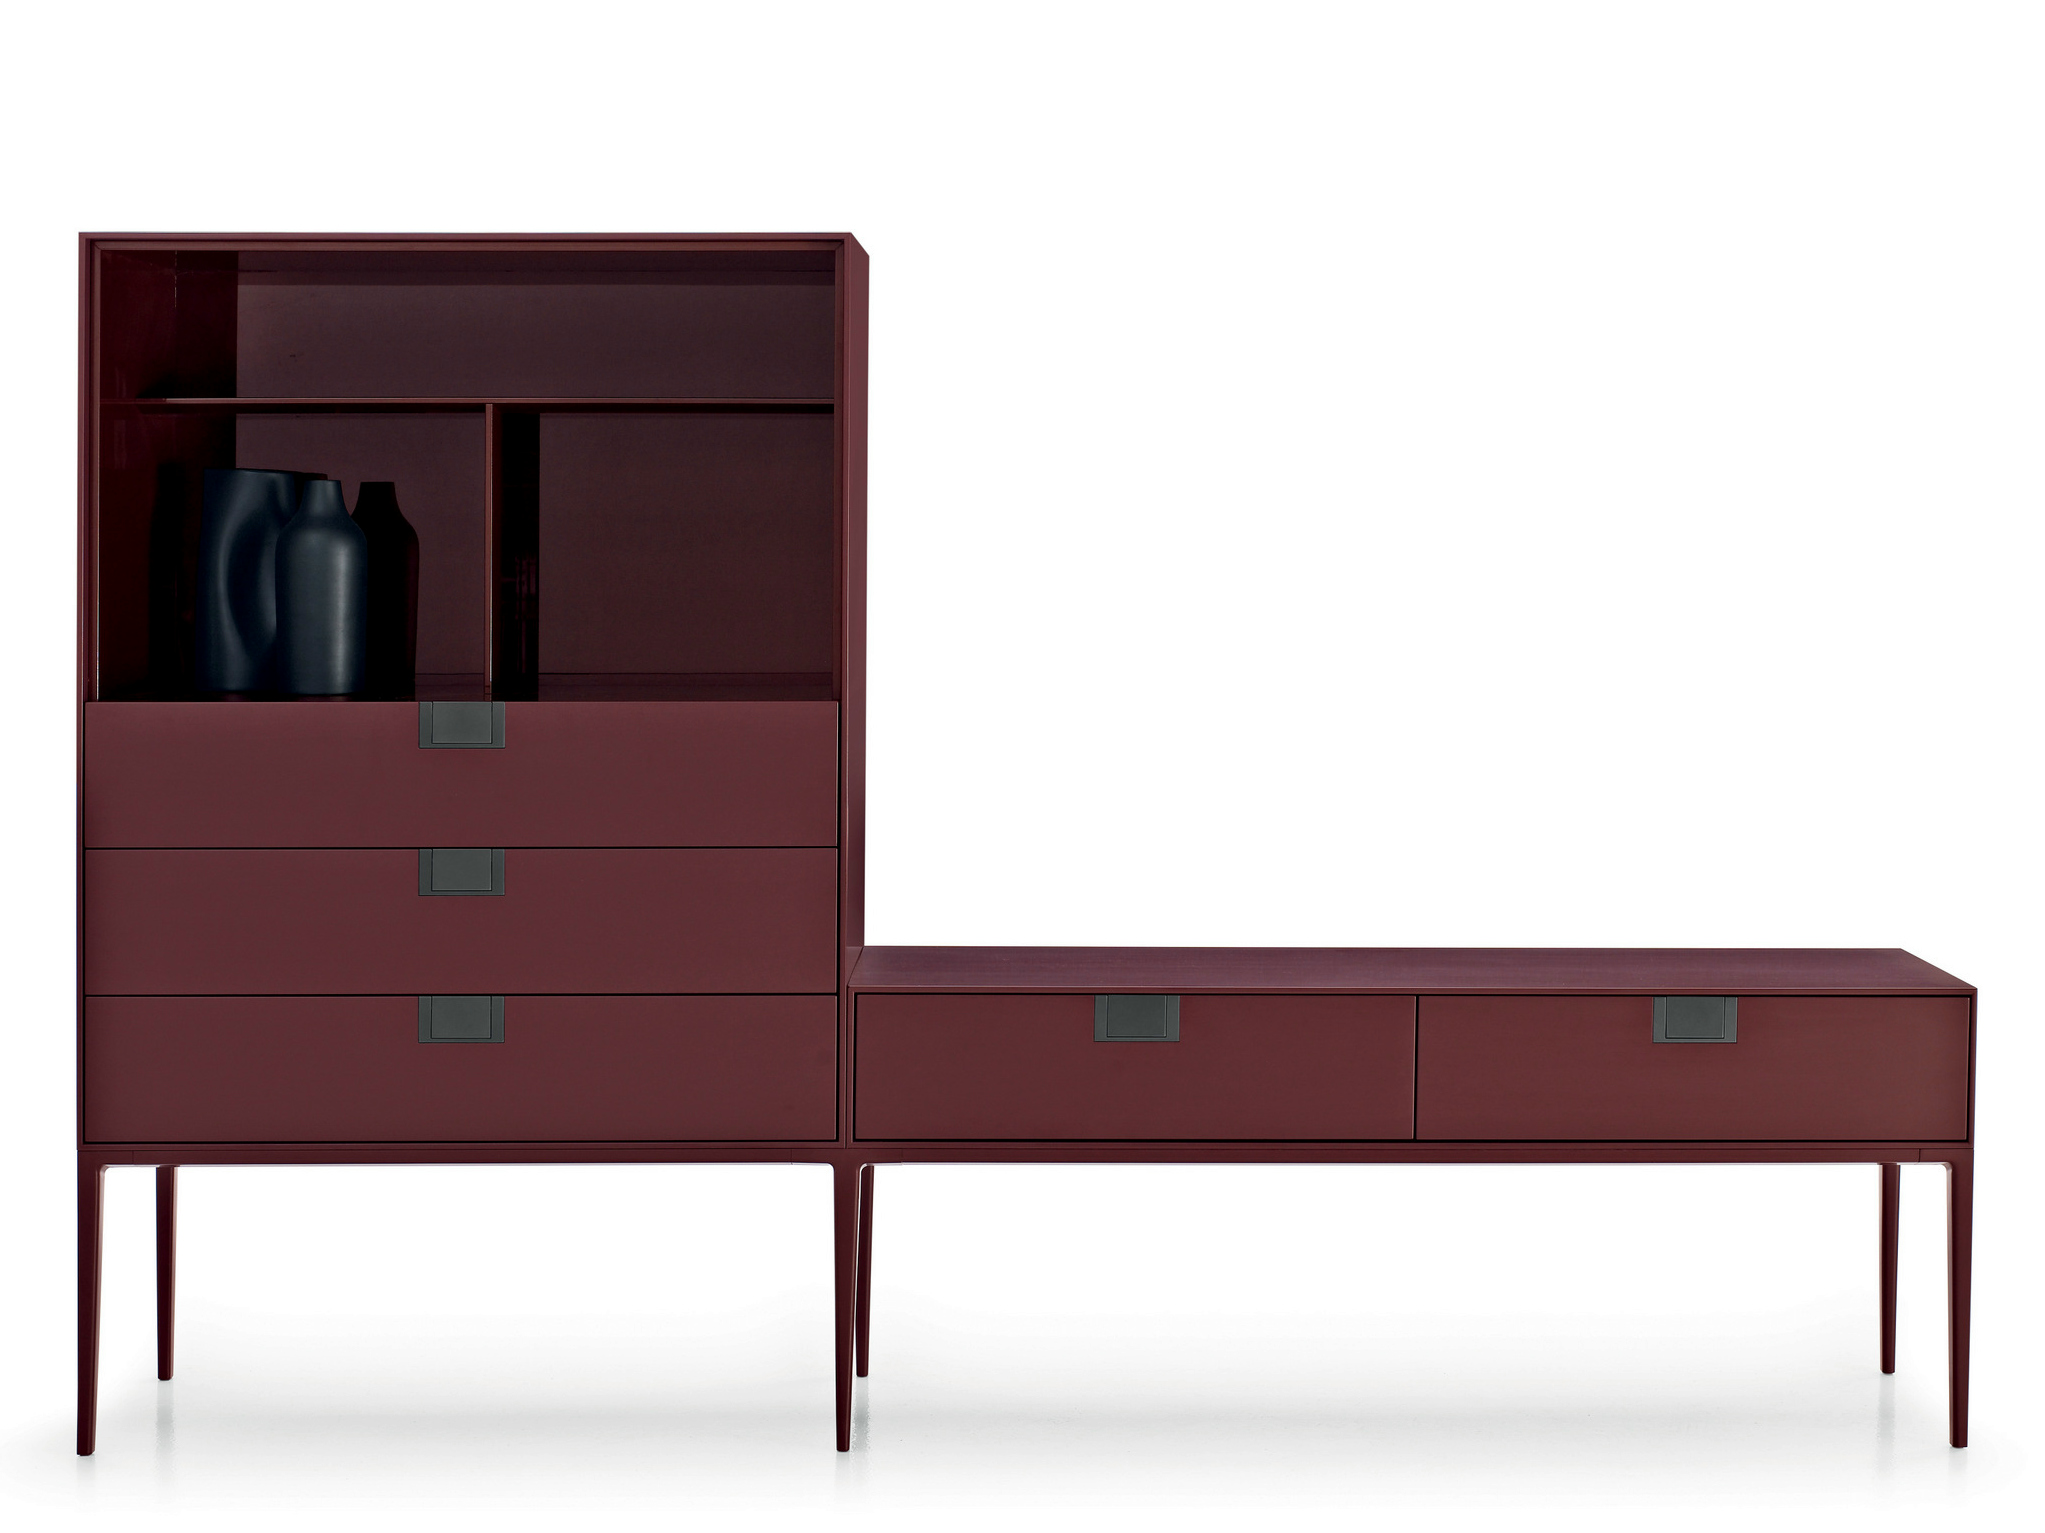 alcor sideboard with drawers by maxalto a brand of b b italia spa design antonio citterio. Black Bedroom Furniture Sets. Home Design Ideas